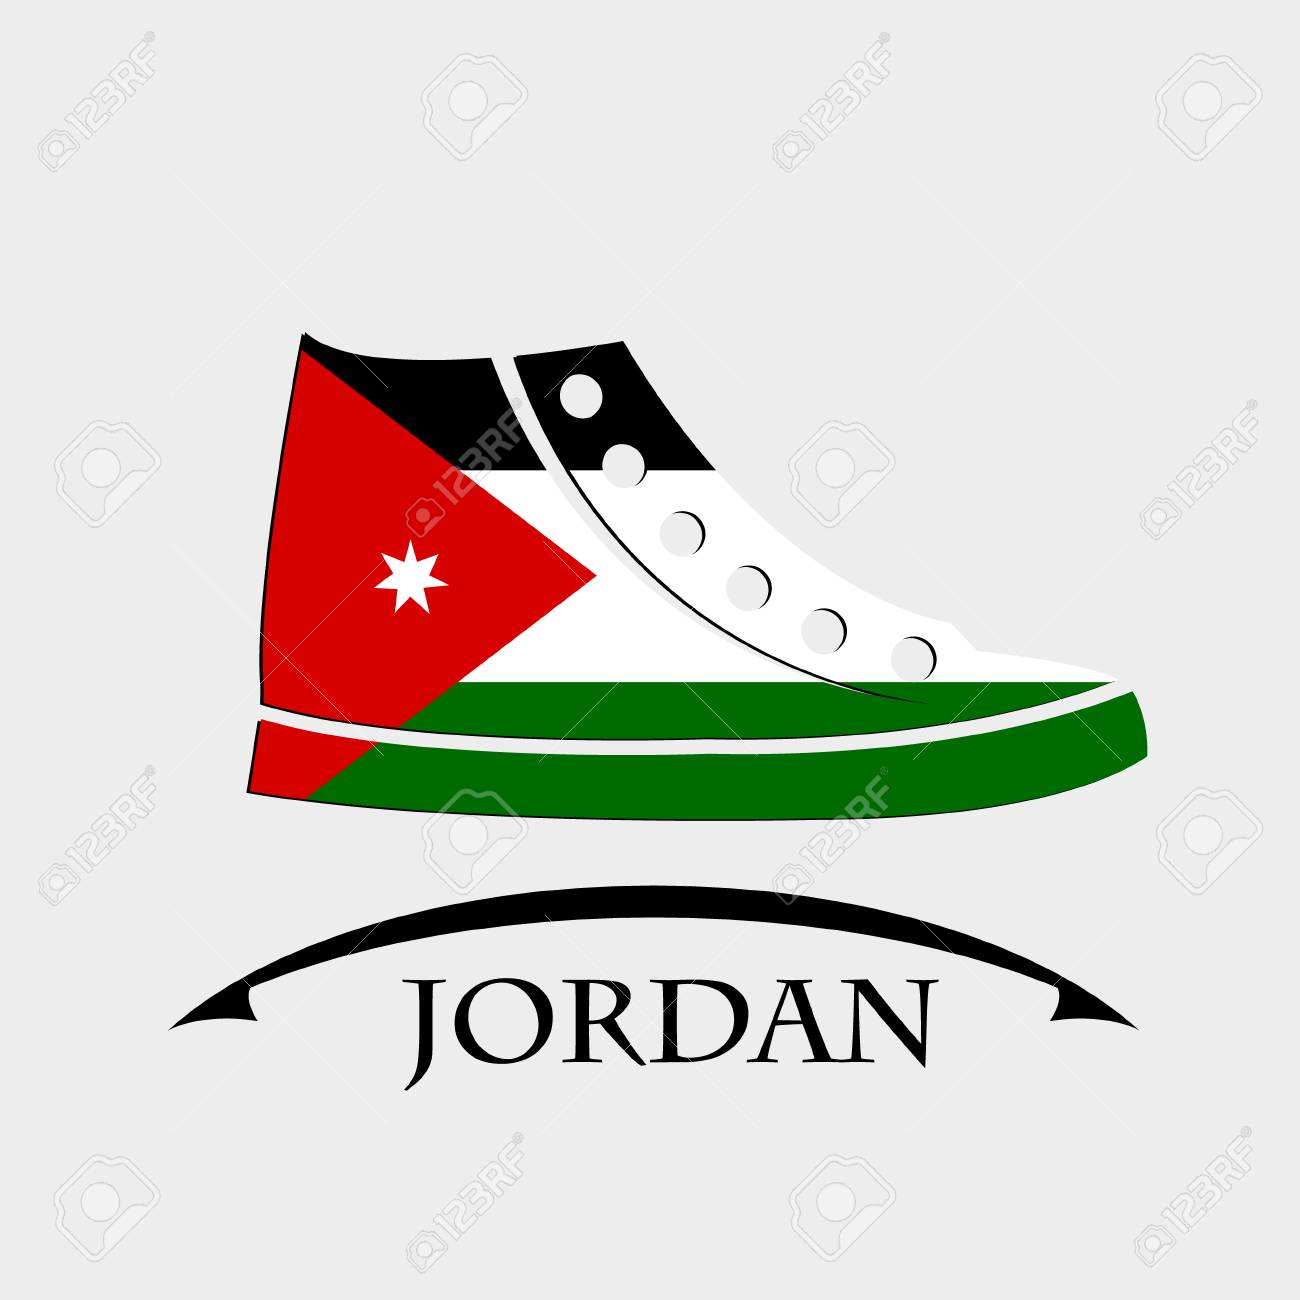 shoes icon made from the flag of Jordan